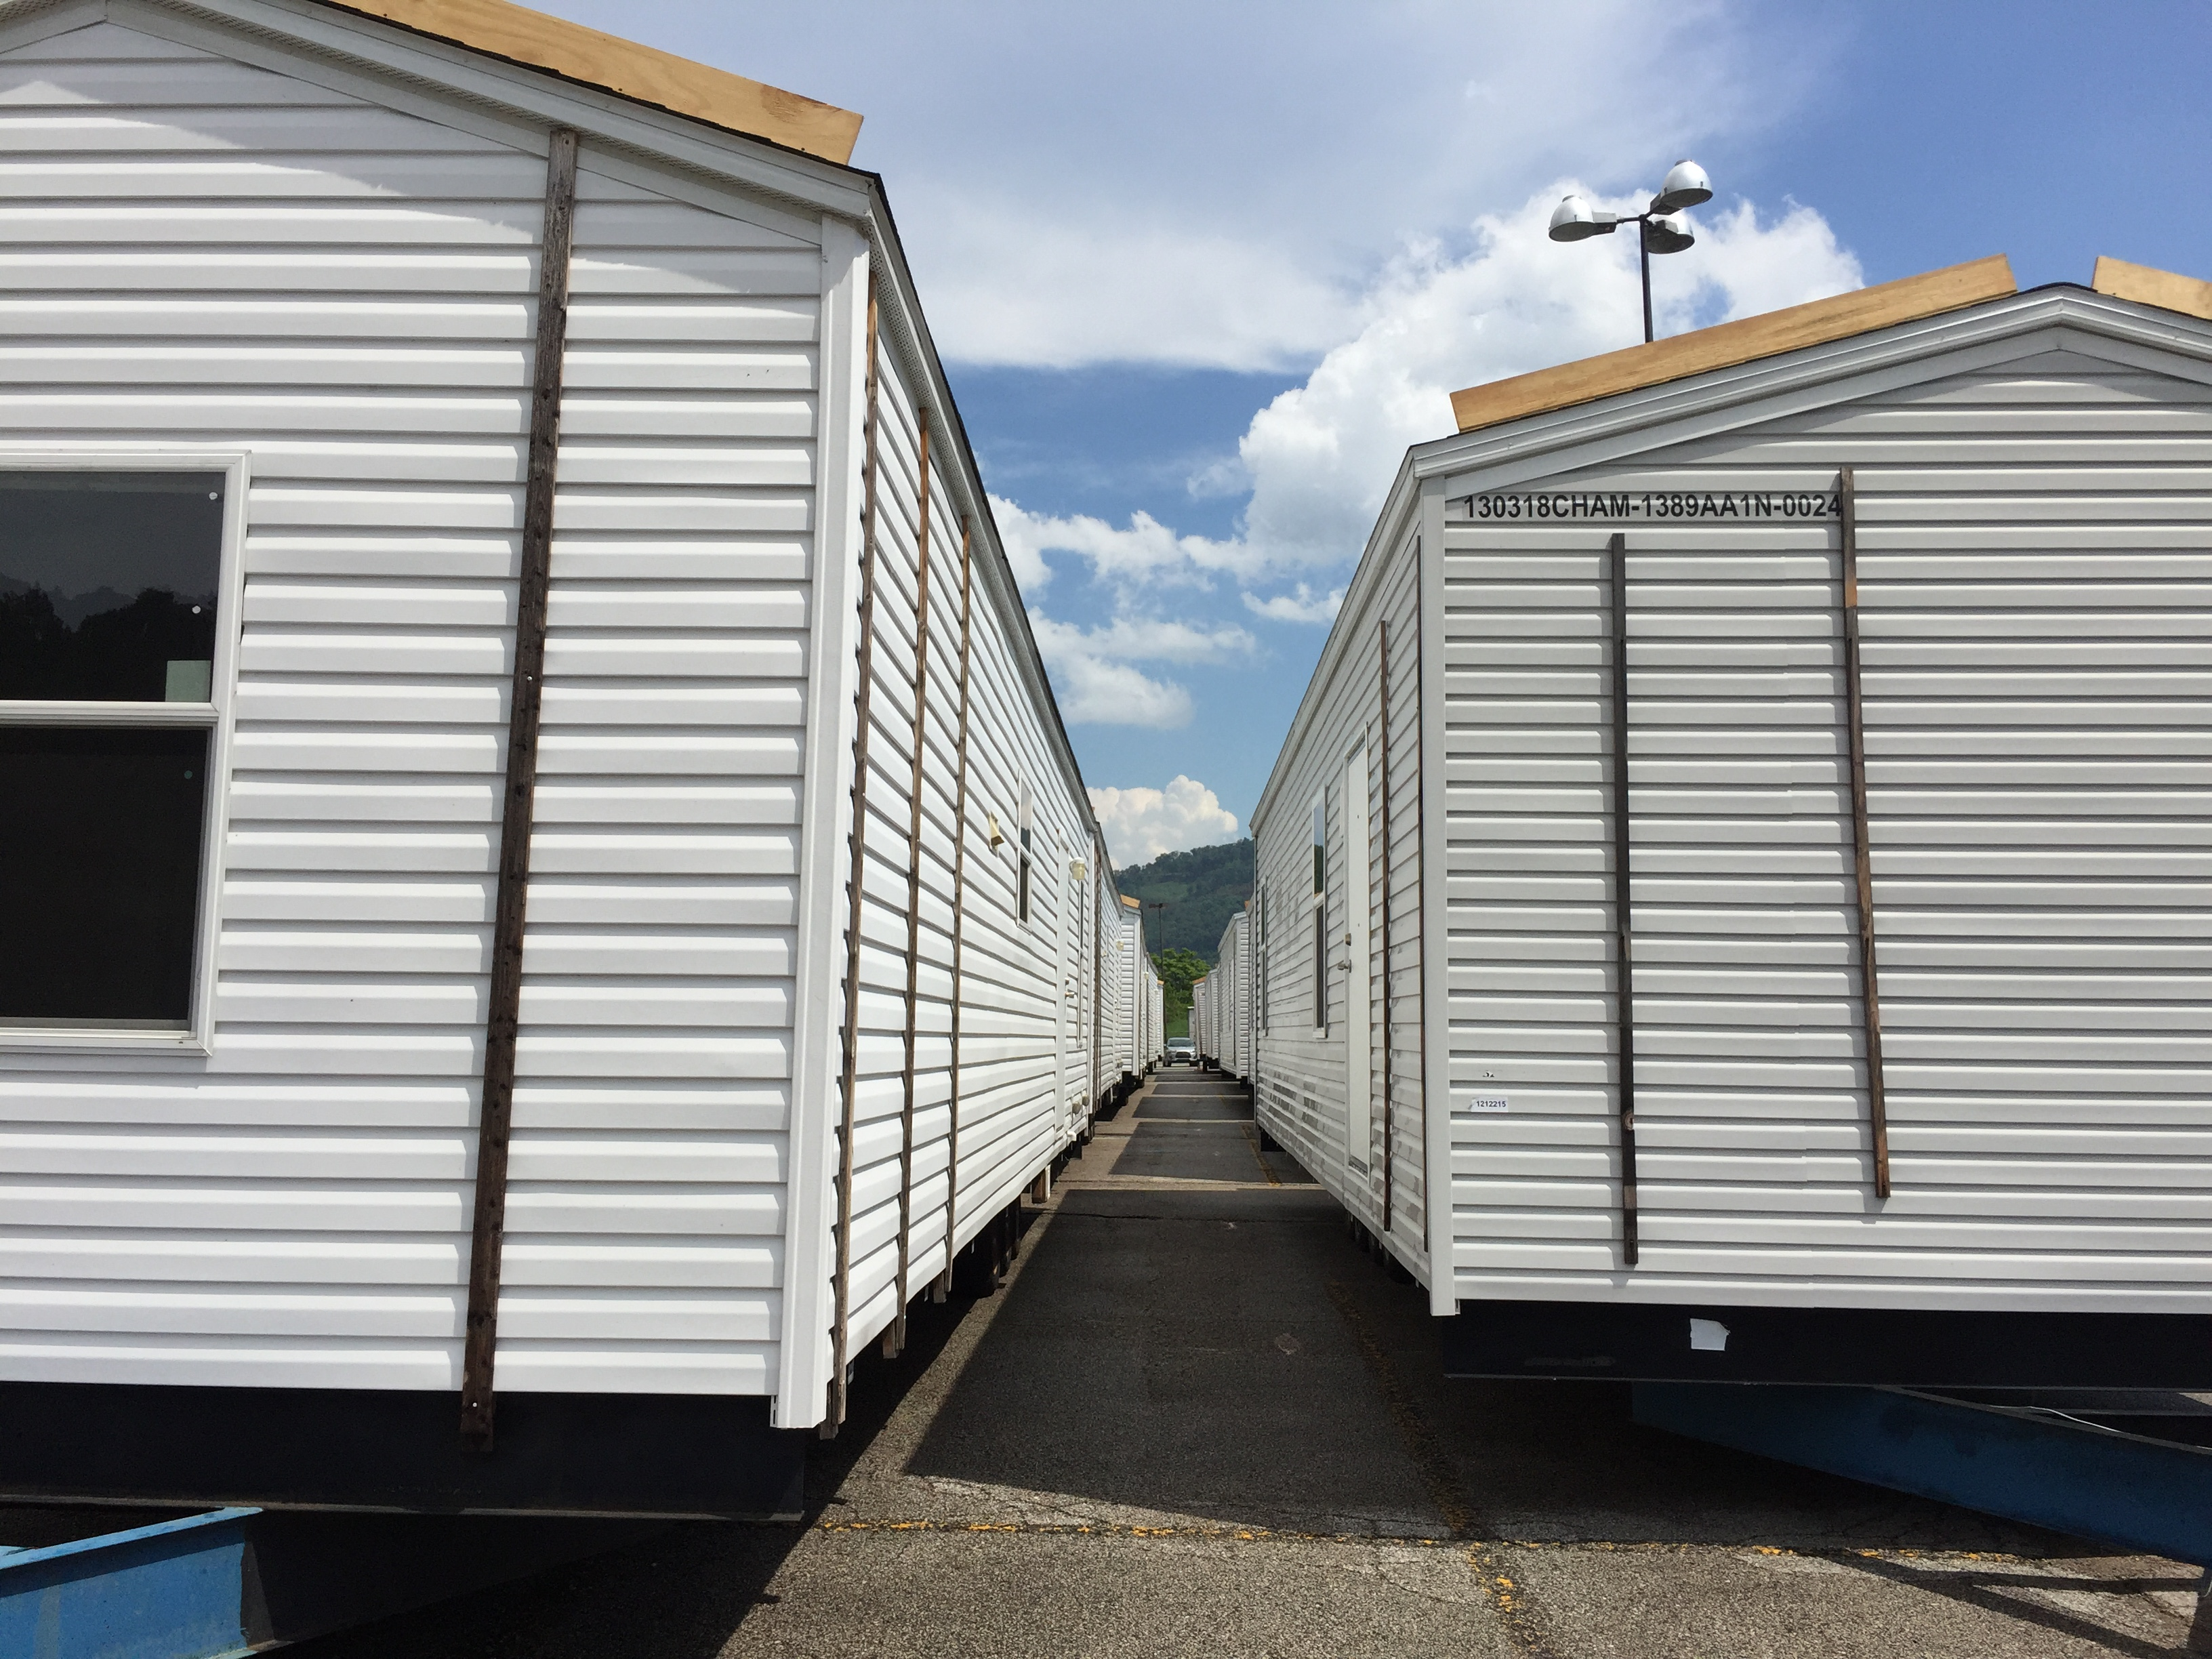 Wv metronews fema unveils last resort mobile home - How long do modular homes last ...